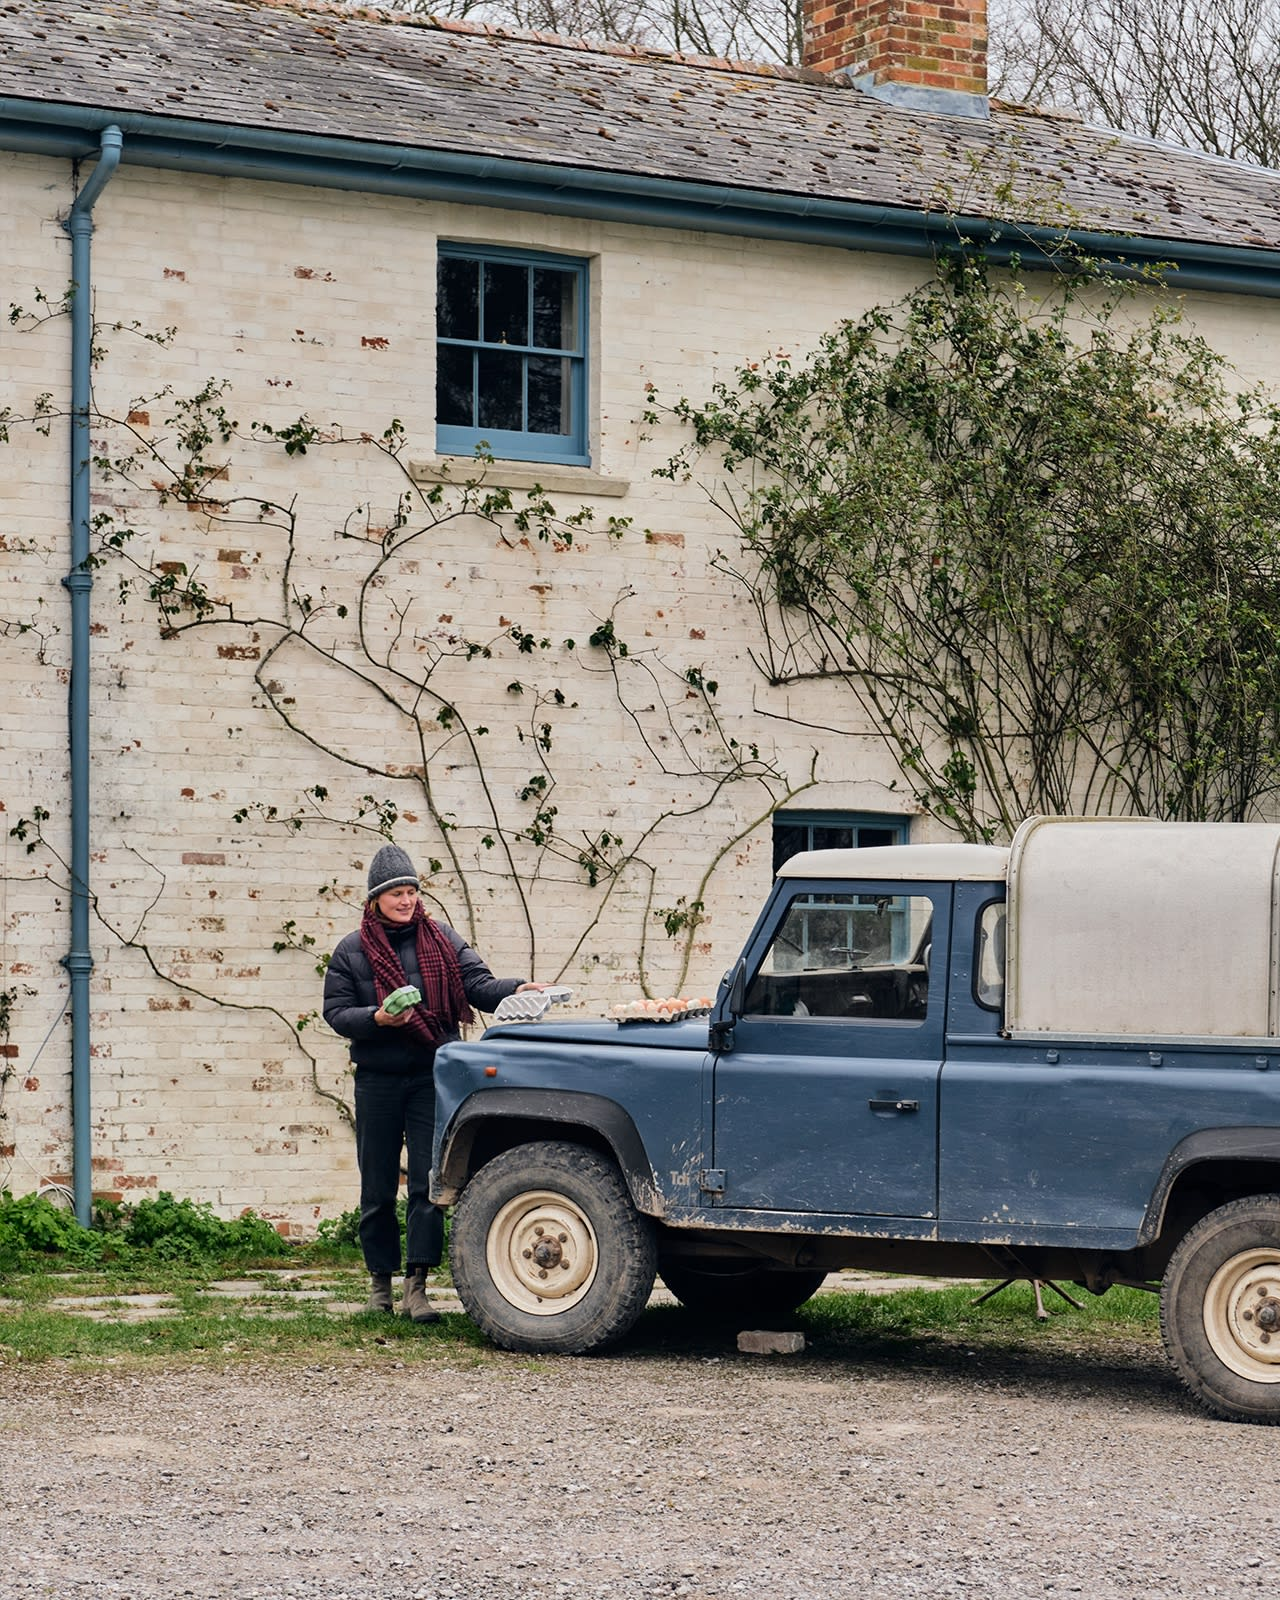 Community spirit in the countryside – Tyga supplying eggs to some neighbours.